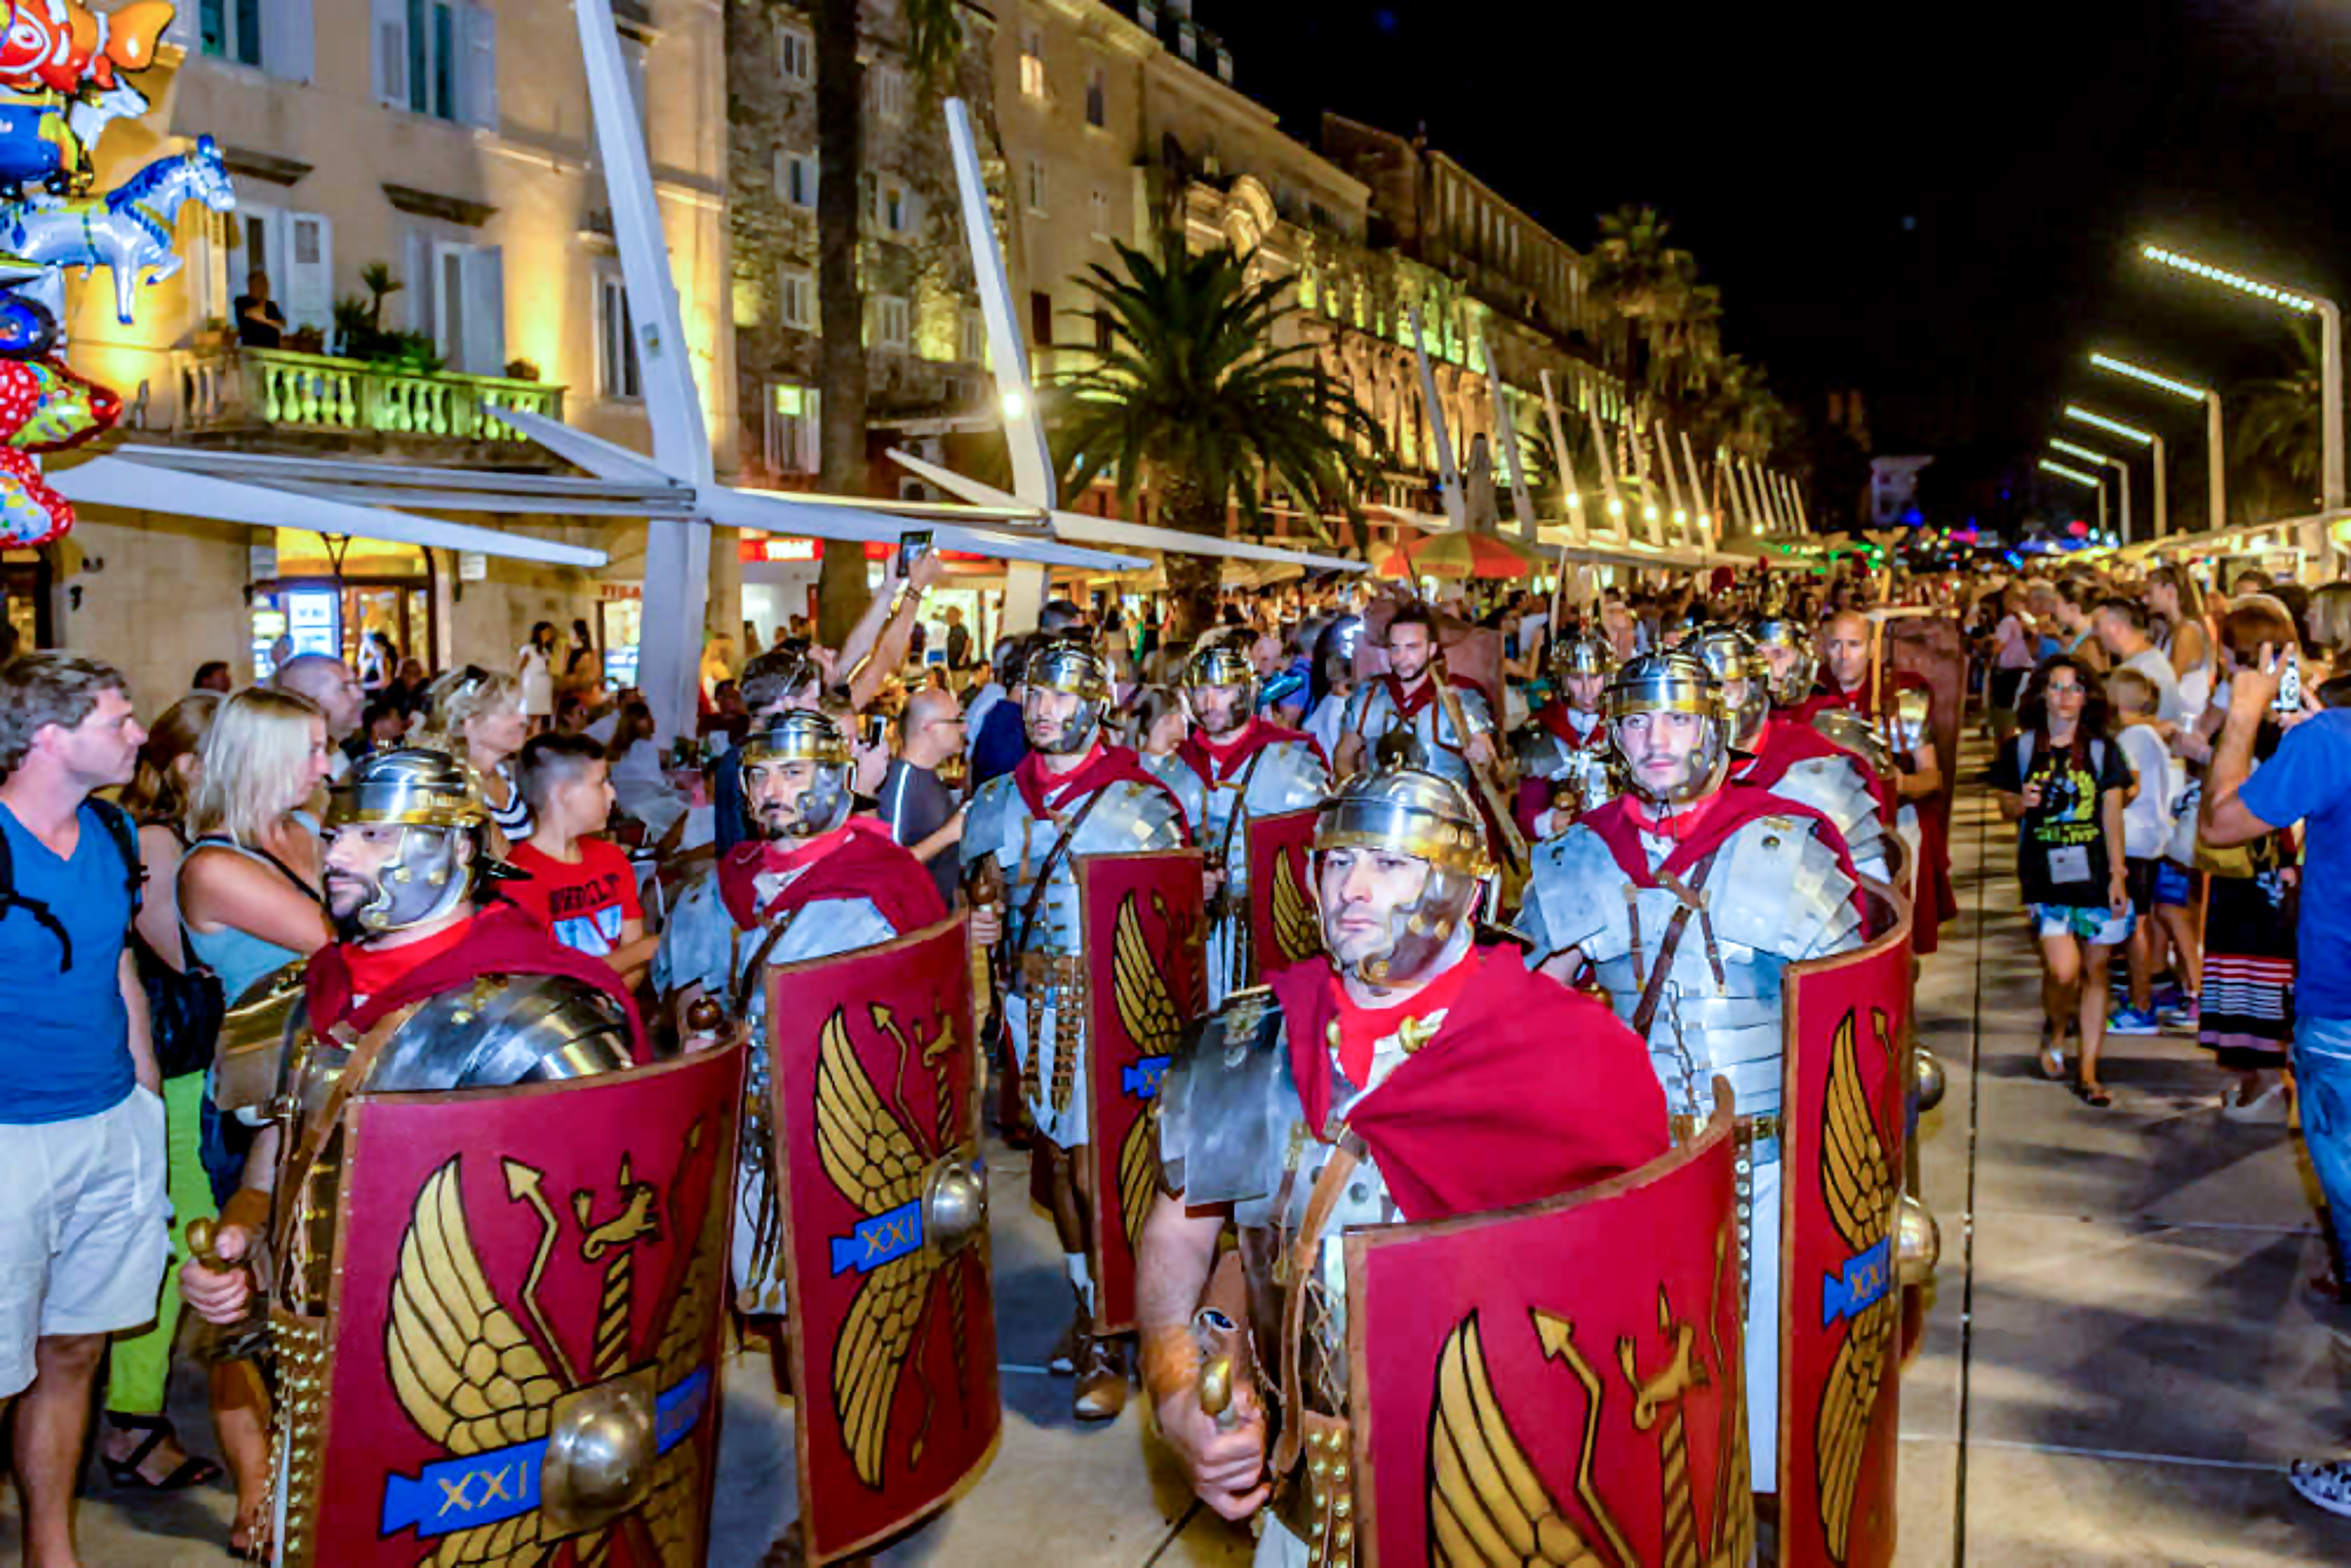 Roman Soldiers Marching the Streets in Split